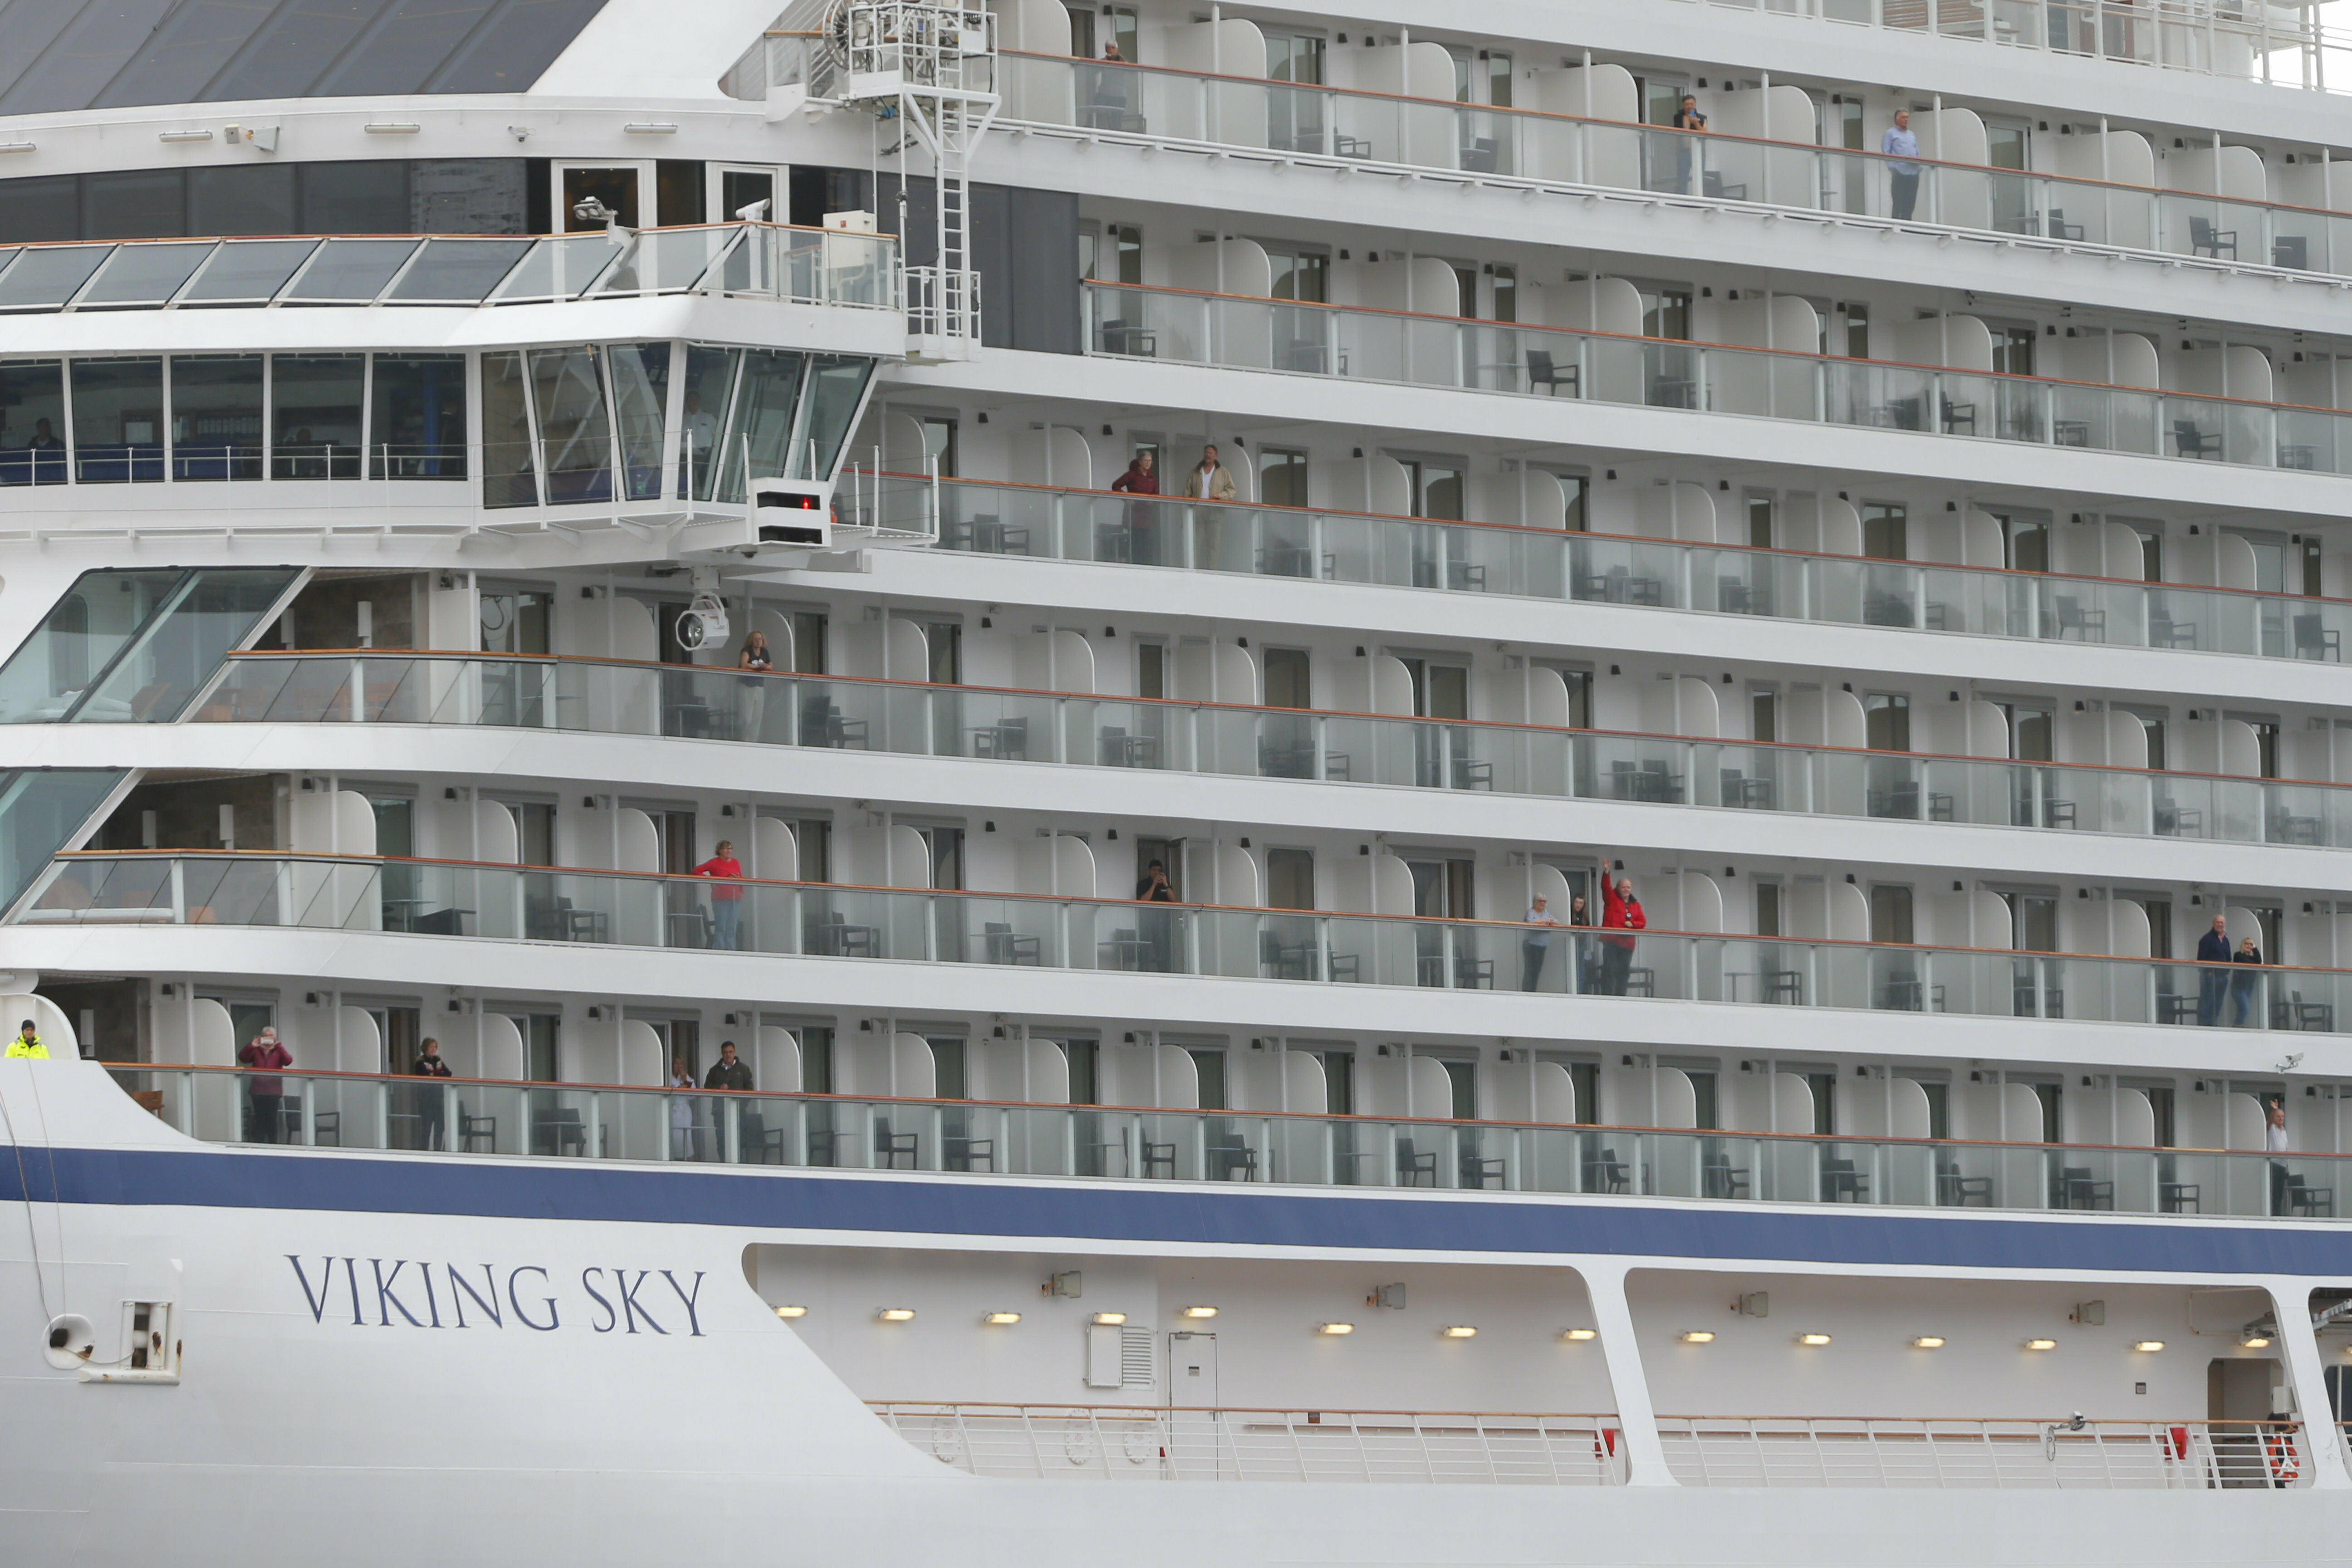 Some of the remaining passengers look out as the cruise ship Viking Sky arrives at port off Molde, Norway, Sunday March 24, 2019, after having problems and issuing a Mayday call on Saturday in heavy seas off Norway's western coast. Rescue helicopters took more than 475 passengers from a cruise ship that got stranded off Norway's western coast in bad weather before the vessel departed for a nearby port under escort and with nearly 900 people still on board, the ship's owner said Sunday. (Svein Ove Ekornesvag/NTB scanpix via AP)